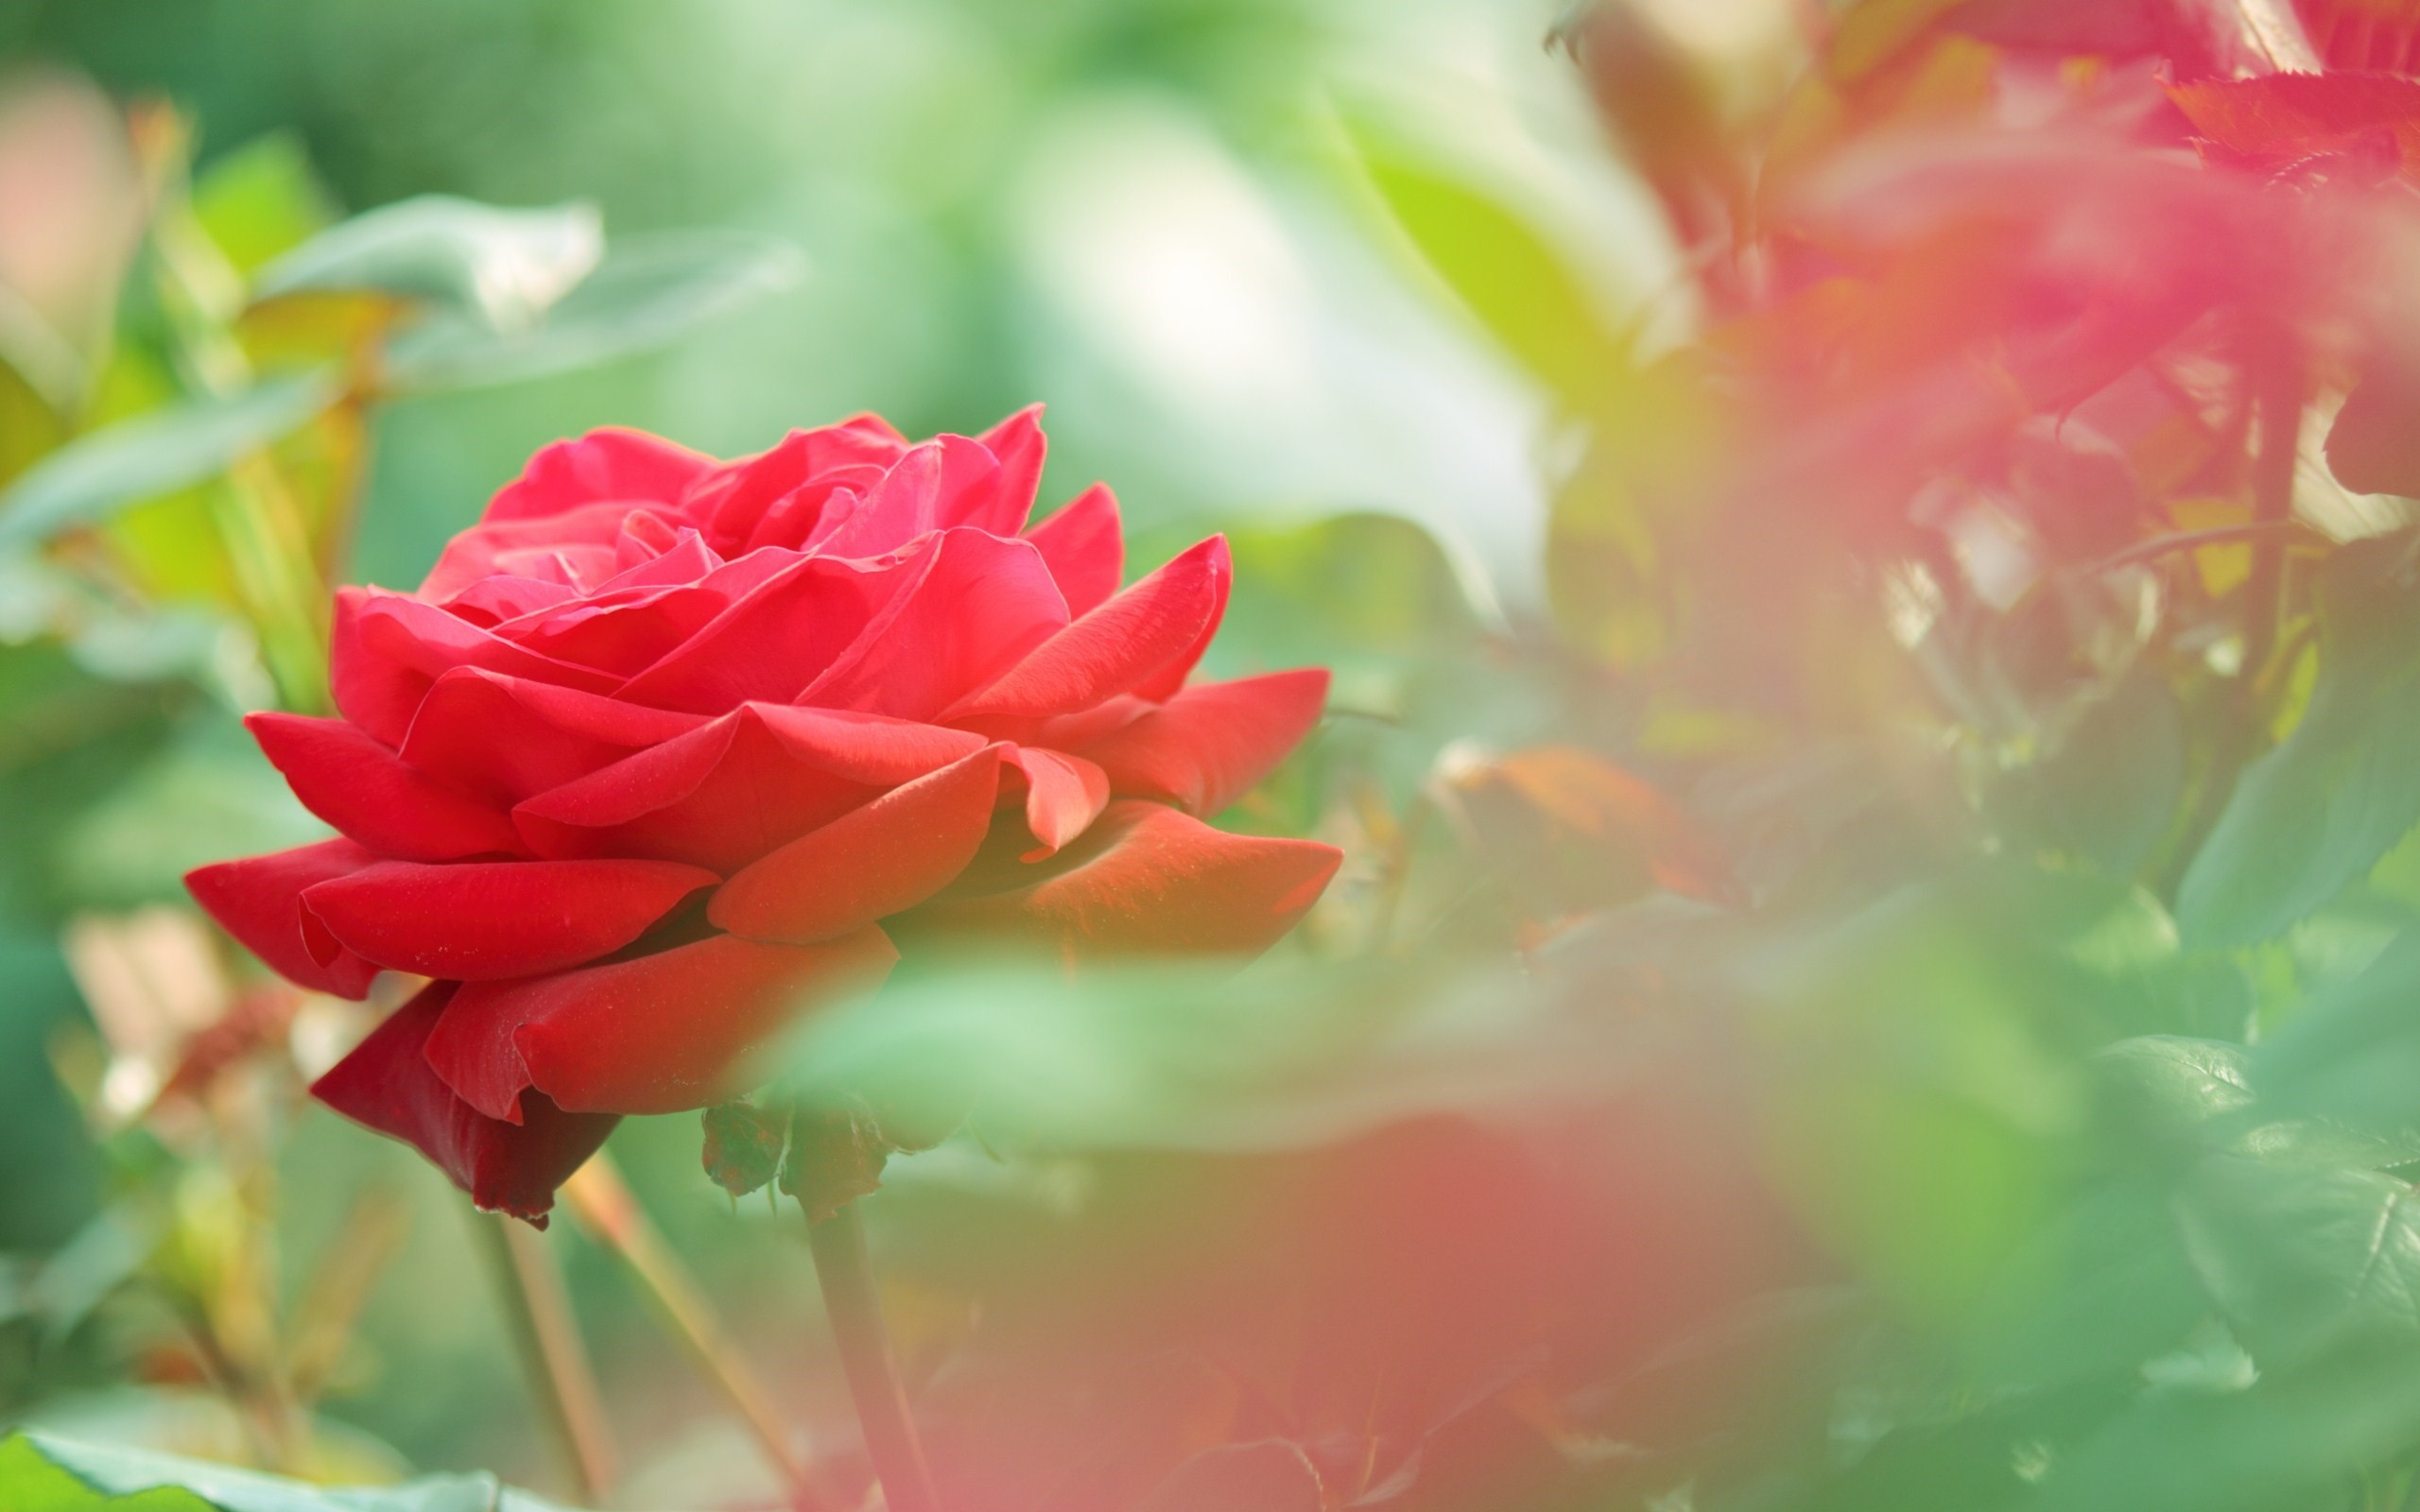 Res: 2560x1600, Desktop For Red Rose Flower Photo Hd Wallpaper Flowers Images Pc